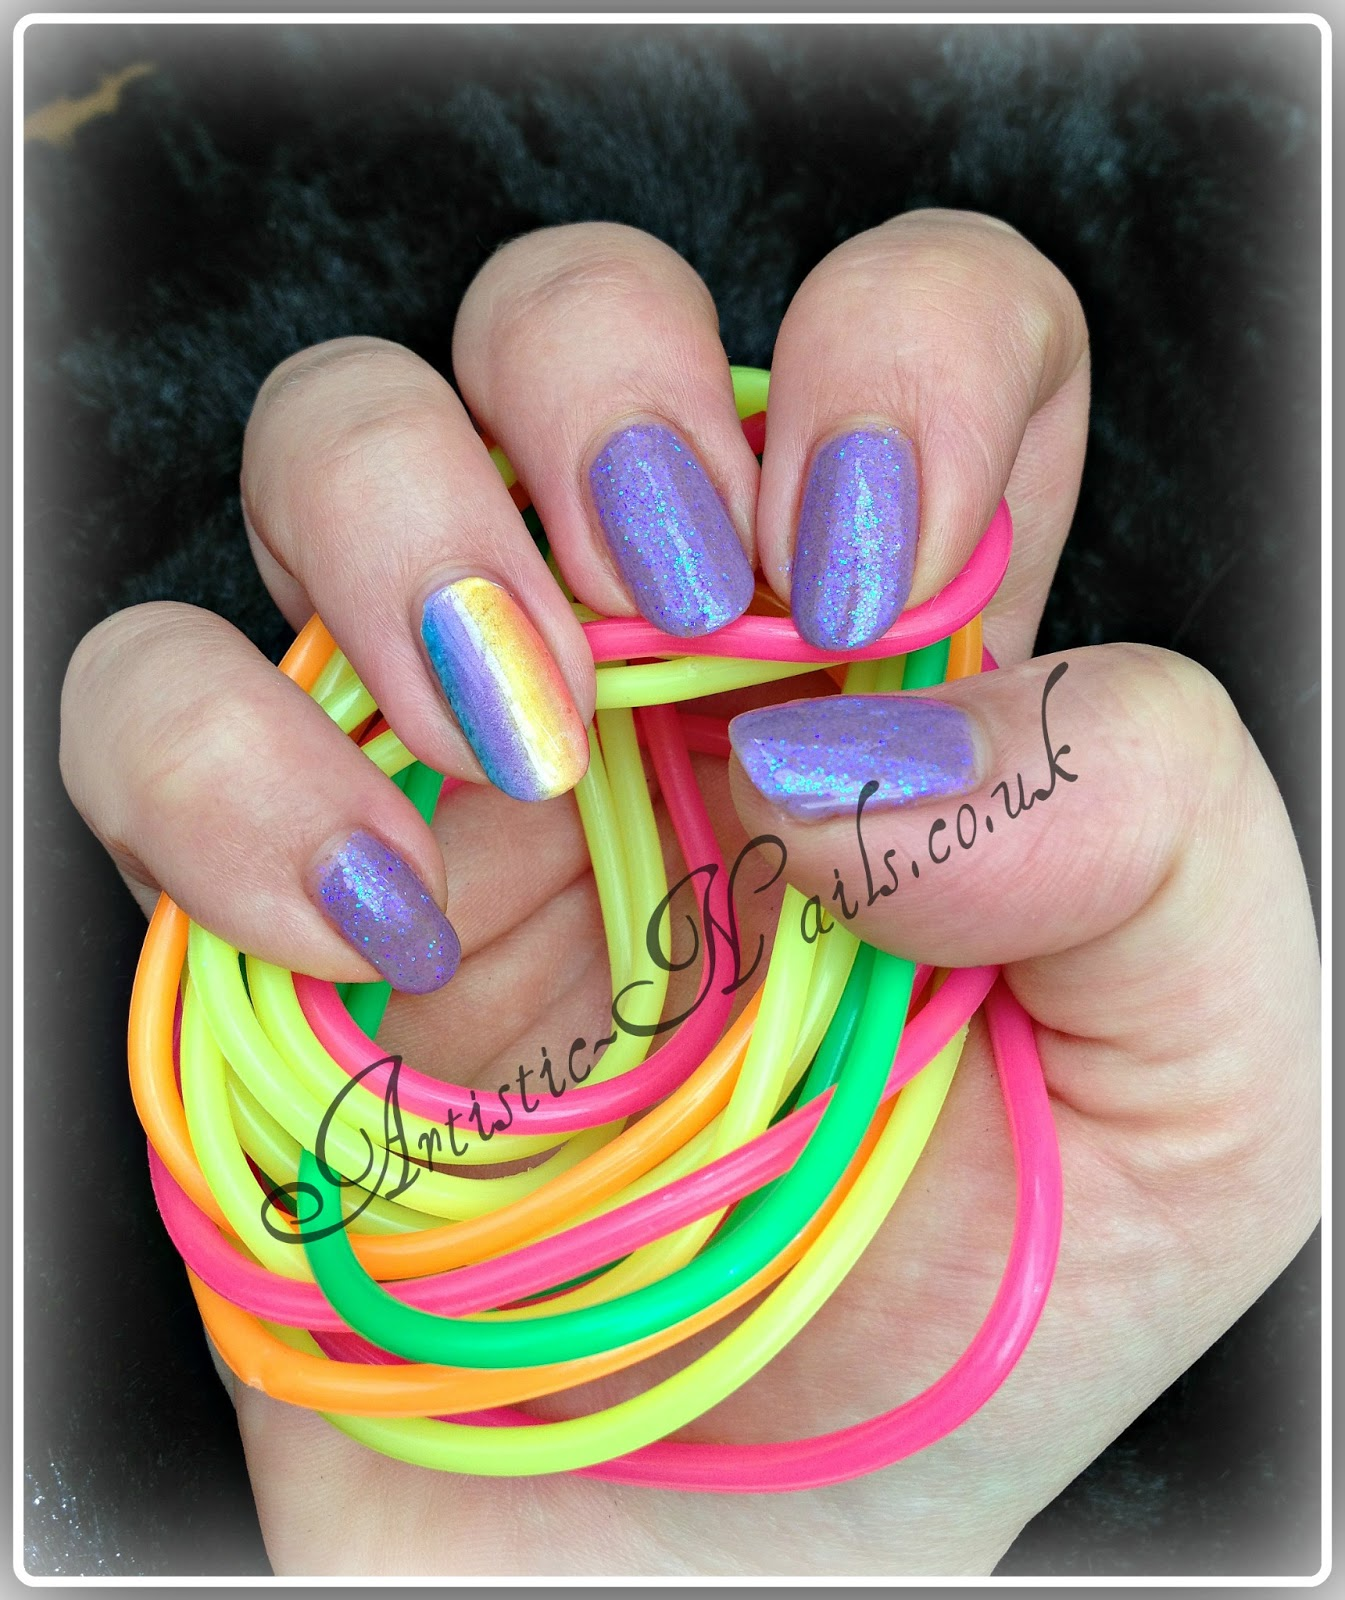 Artistic Nails Poole Uk Rainbow Nails With Shellac And Additives